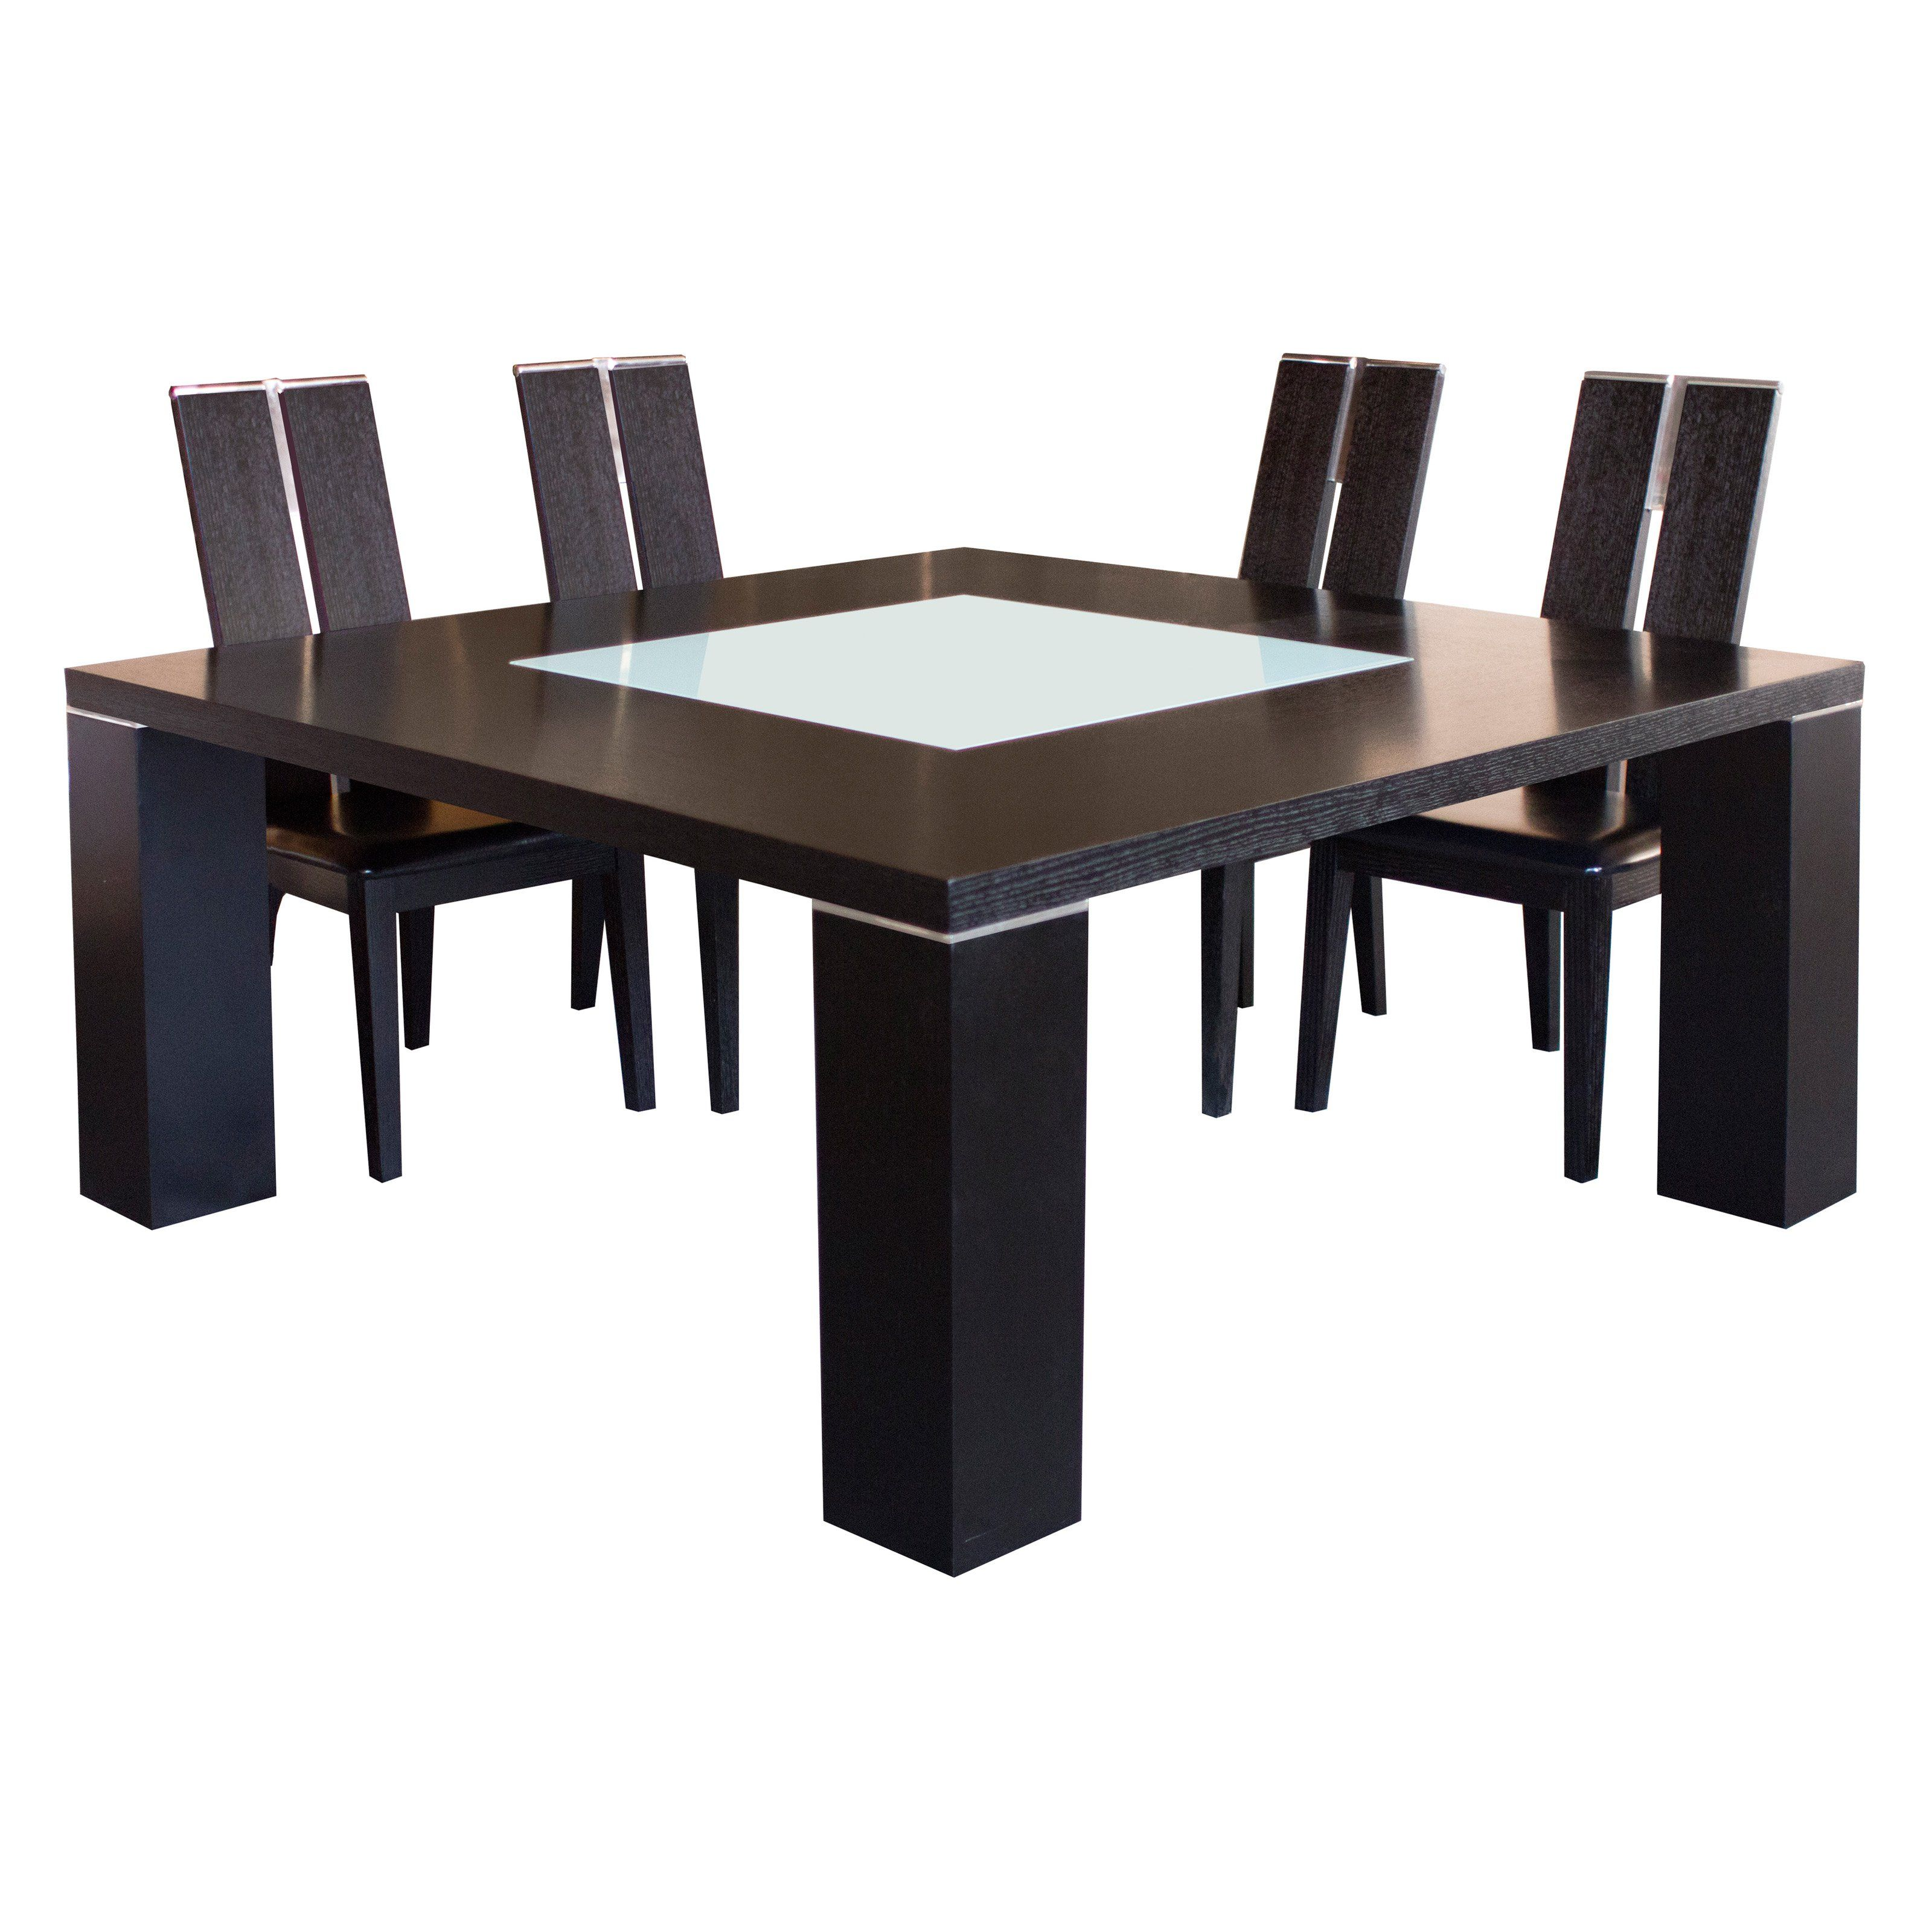 Have To Have Itelite Square Dining Table With Glass Insert Extraordinary Square Dining Room Set Inspiration